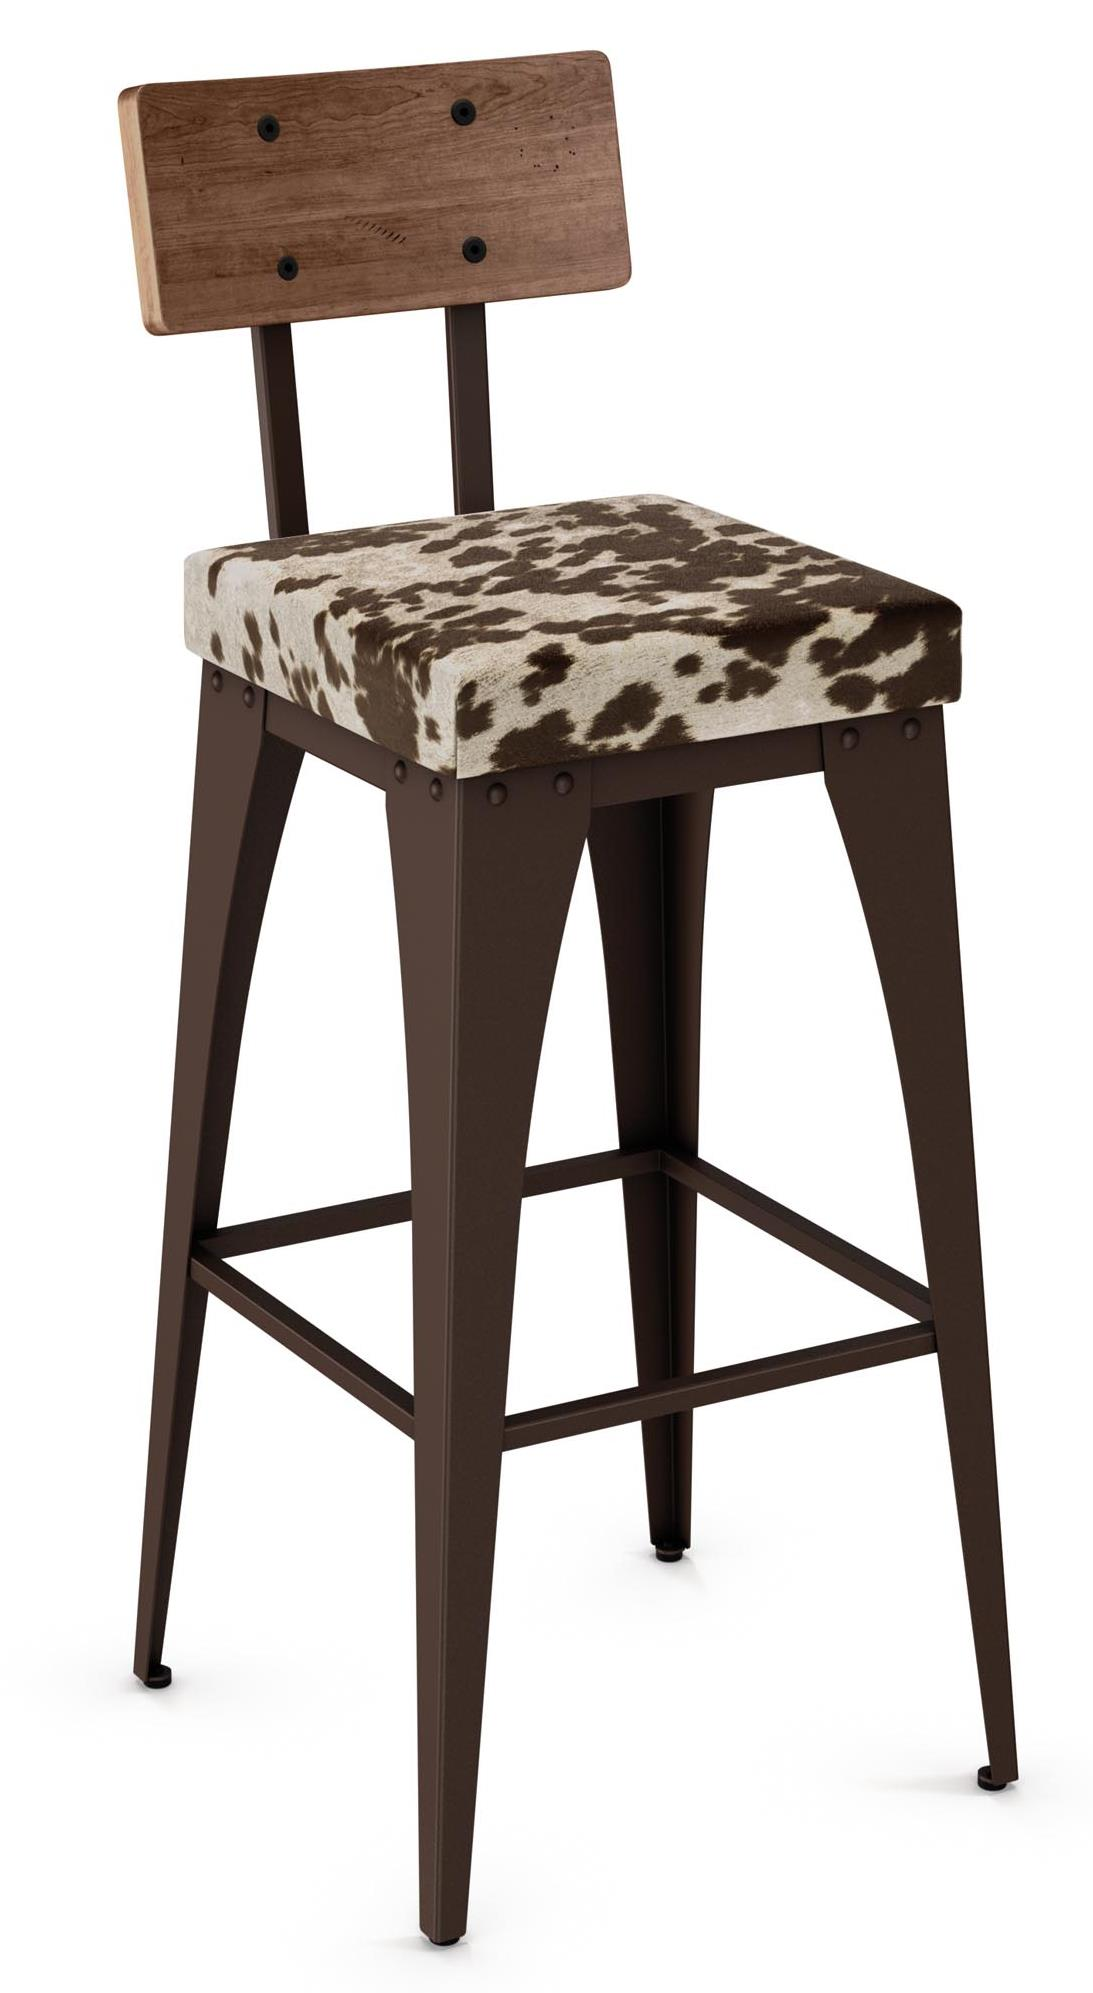 "Industrial 26"" Upright Stool by Amisco at Johnny Janosik"